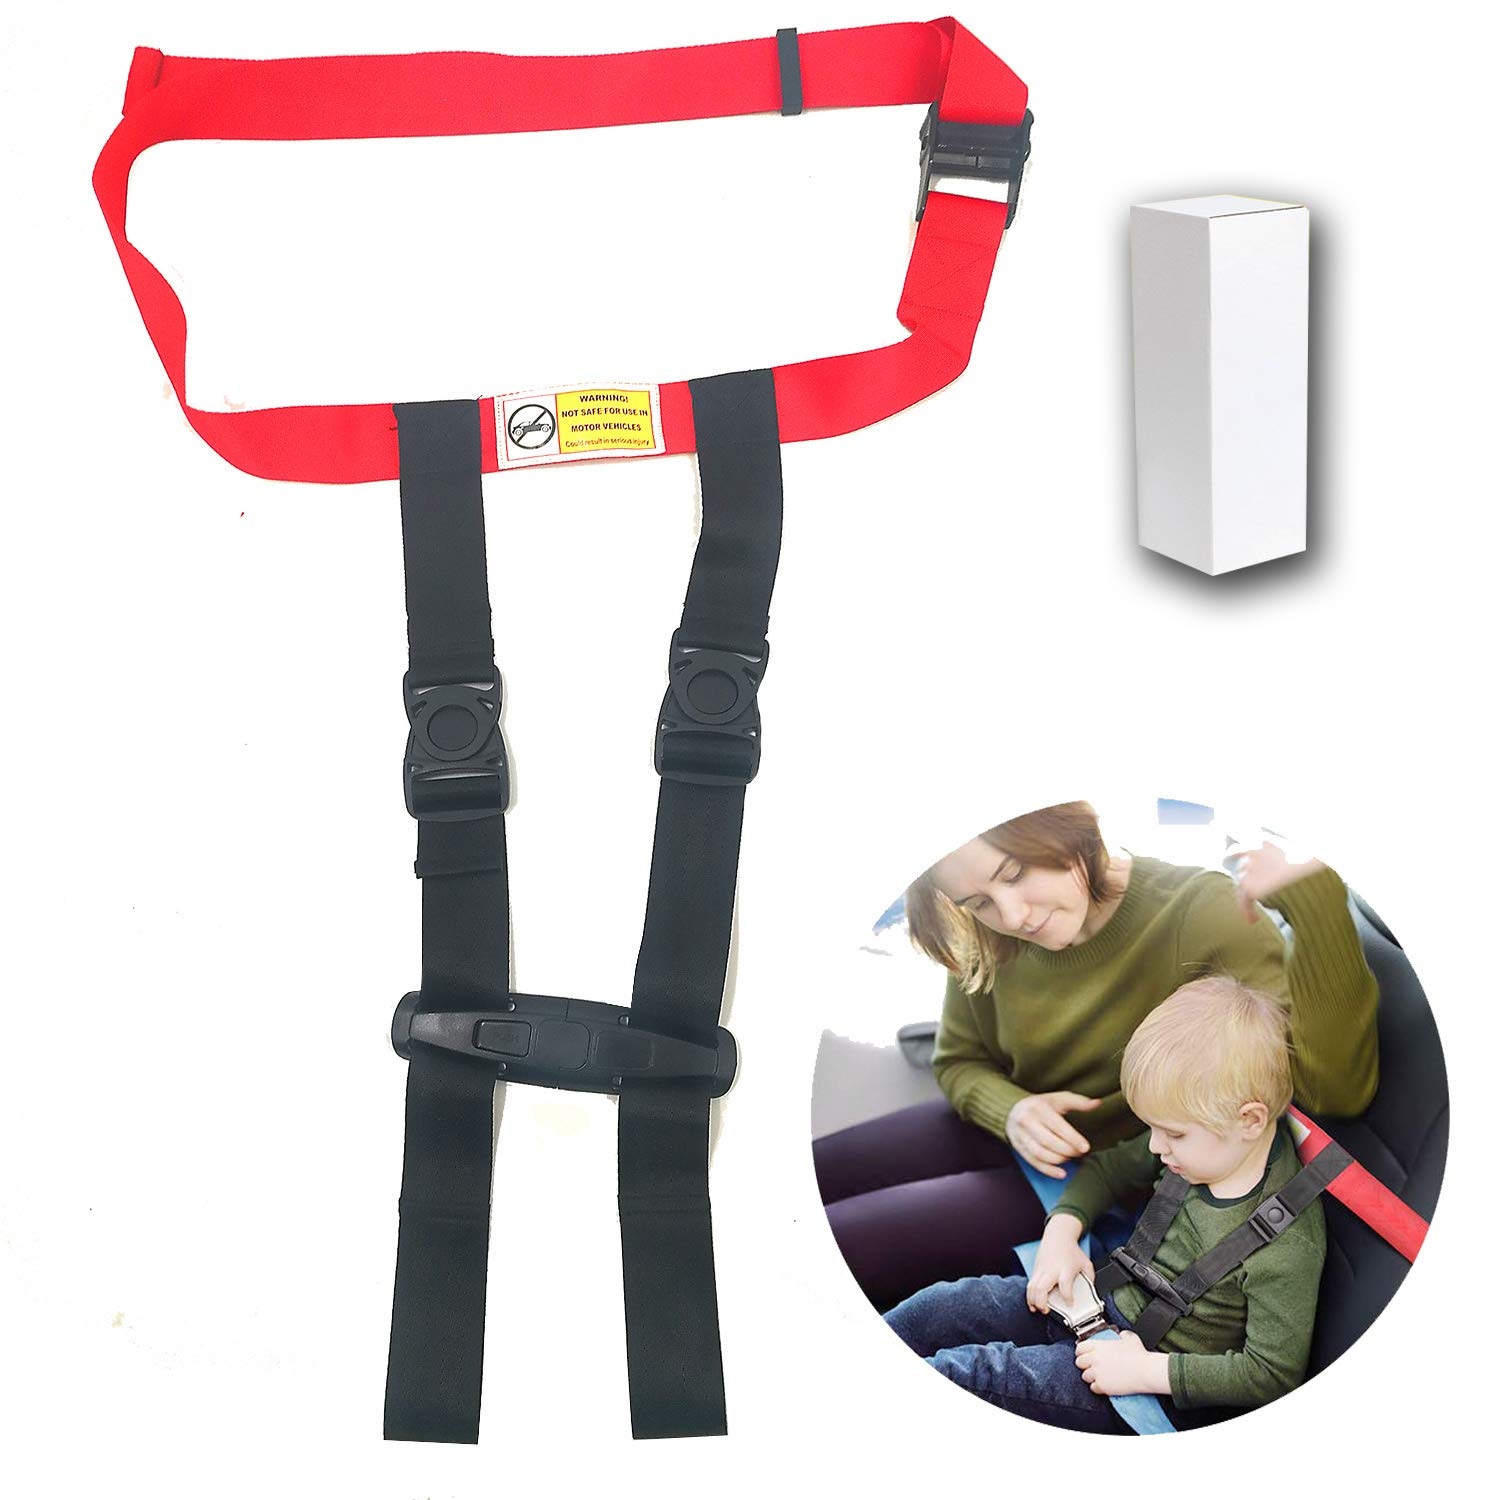 Child Airplane Safety Travel Harness ~ Clip Strap Safety Airplane Child Restraint System for Baby,Toddlers & Kids ~ Airplane Travel Accessories for Aviation Travel Use (Basic Style)